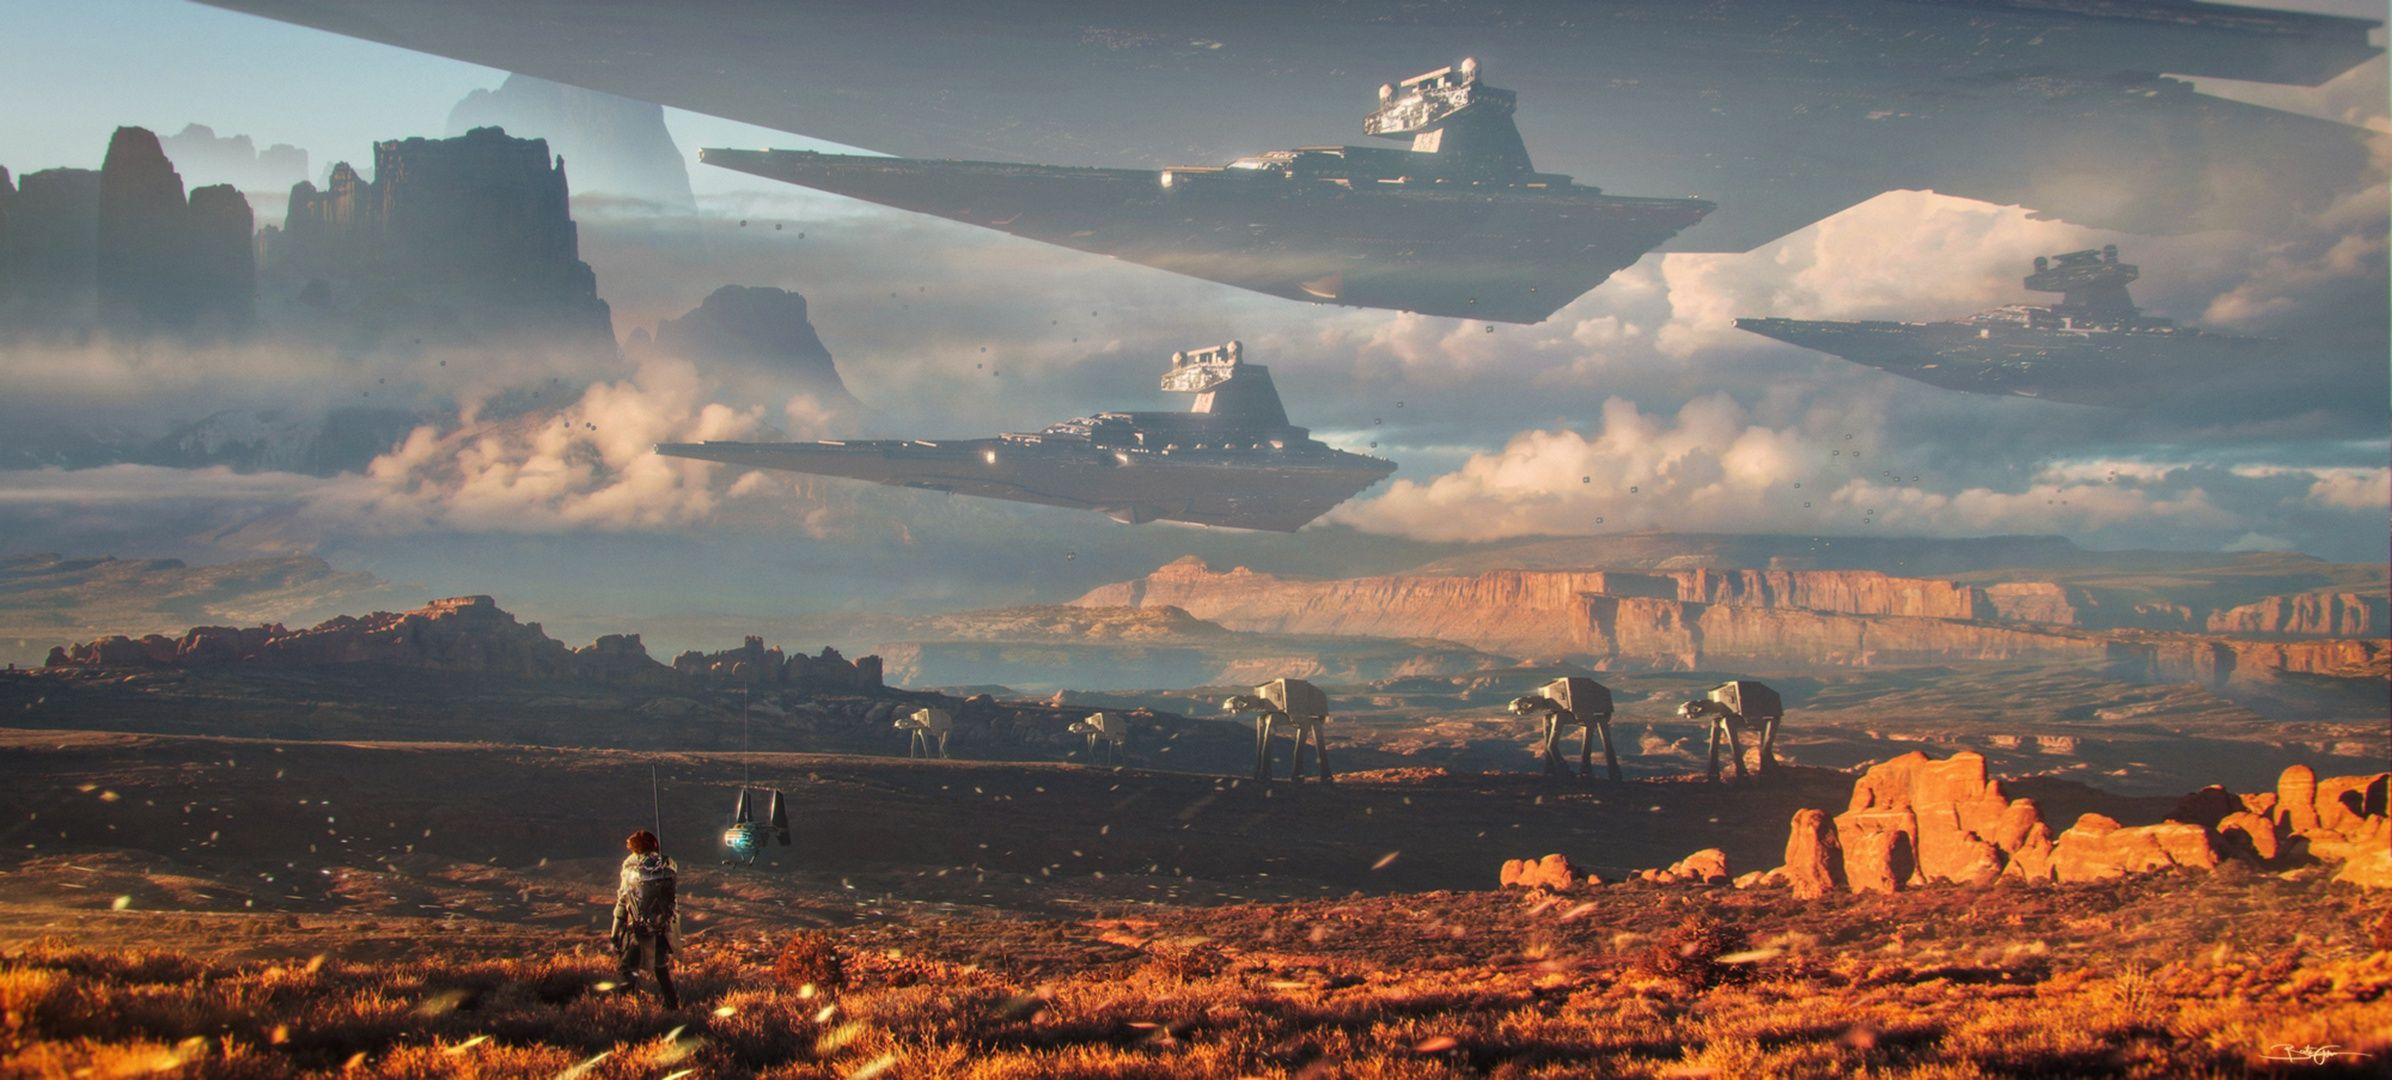 Star Wars Tatooine Background Posted By